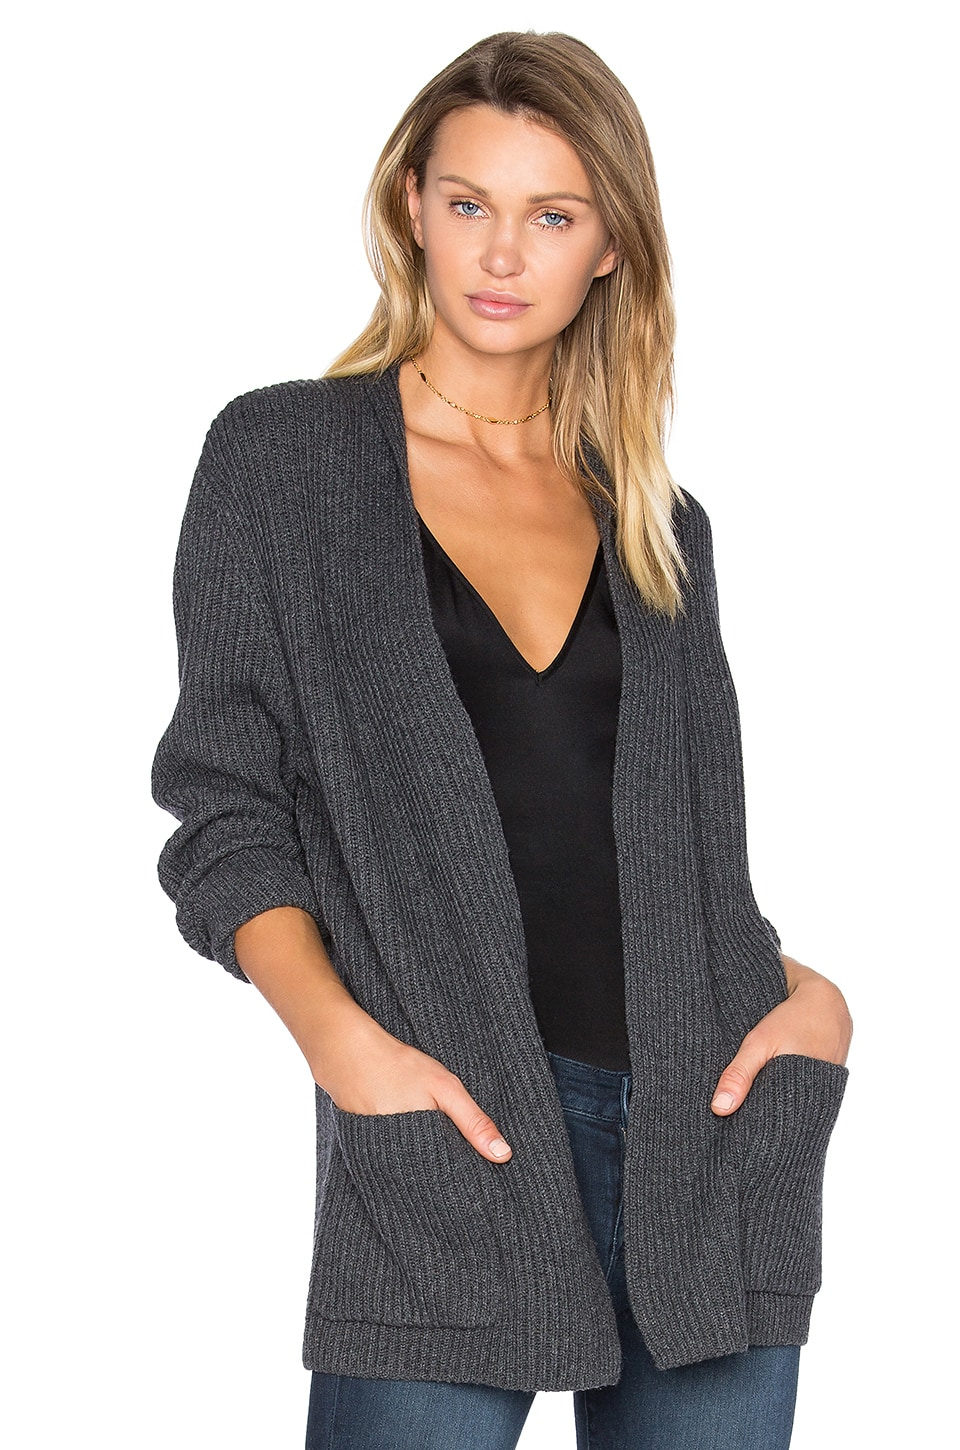 baldwin Grandpa Cardigan in Heathered